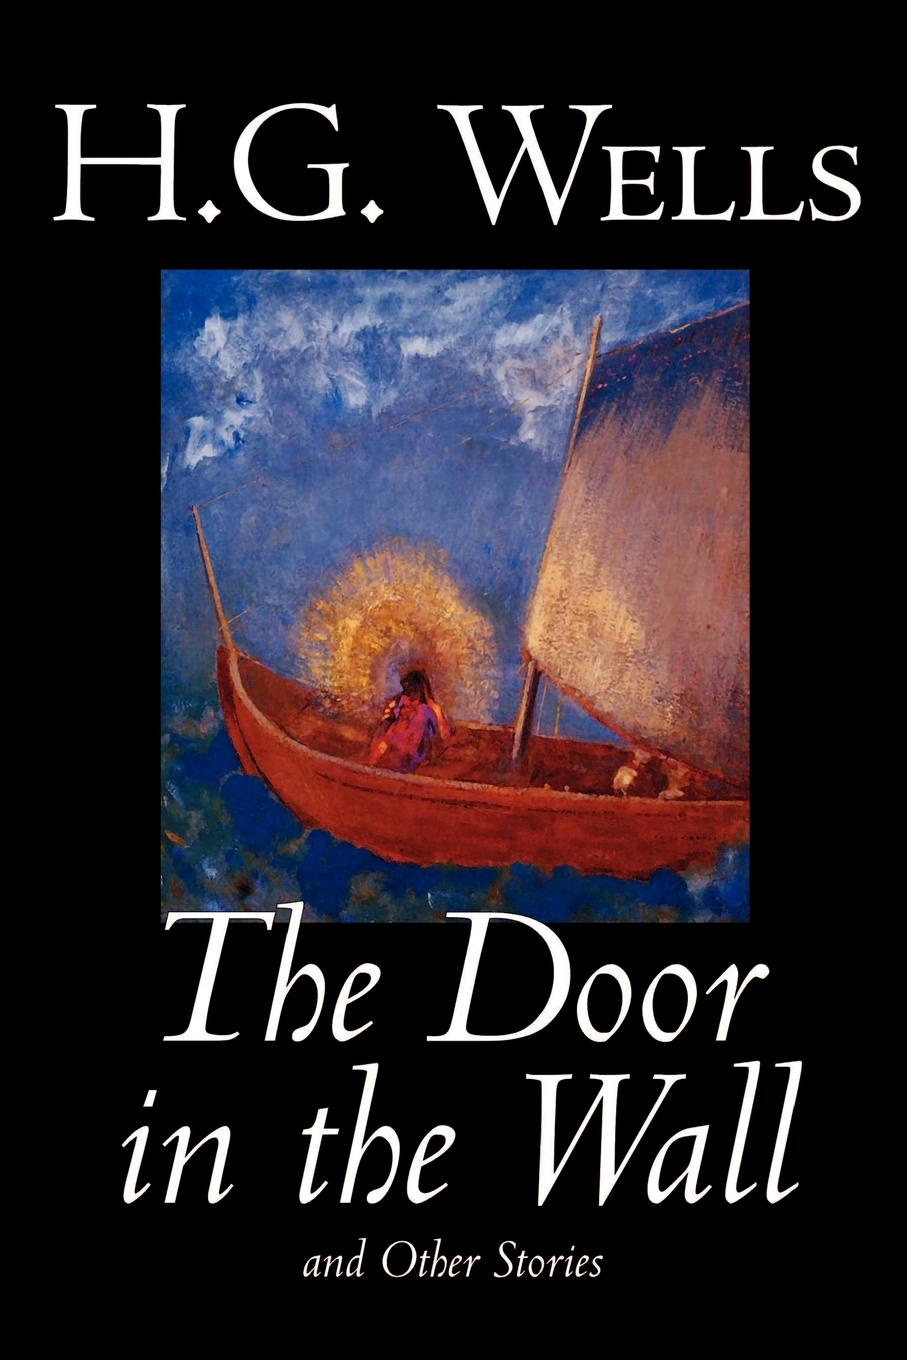 H. G. Wells The Door in the Wall and Other Stories by H. G. Wells, Science Fiction, Literary цена и фото